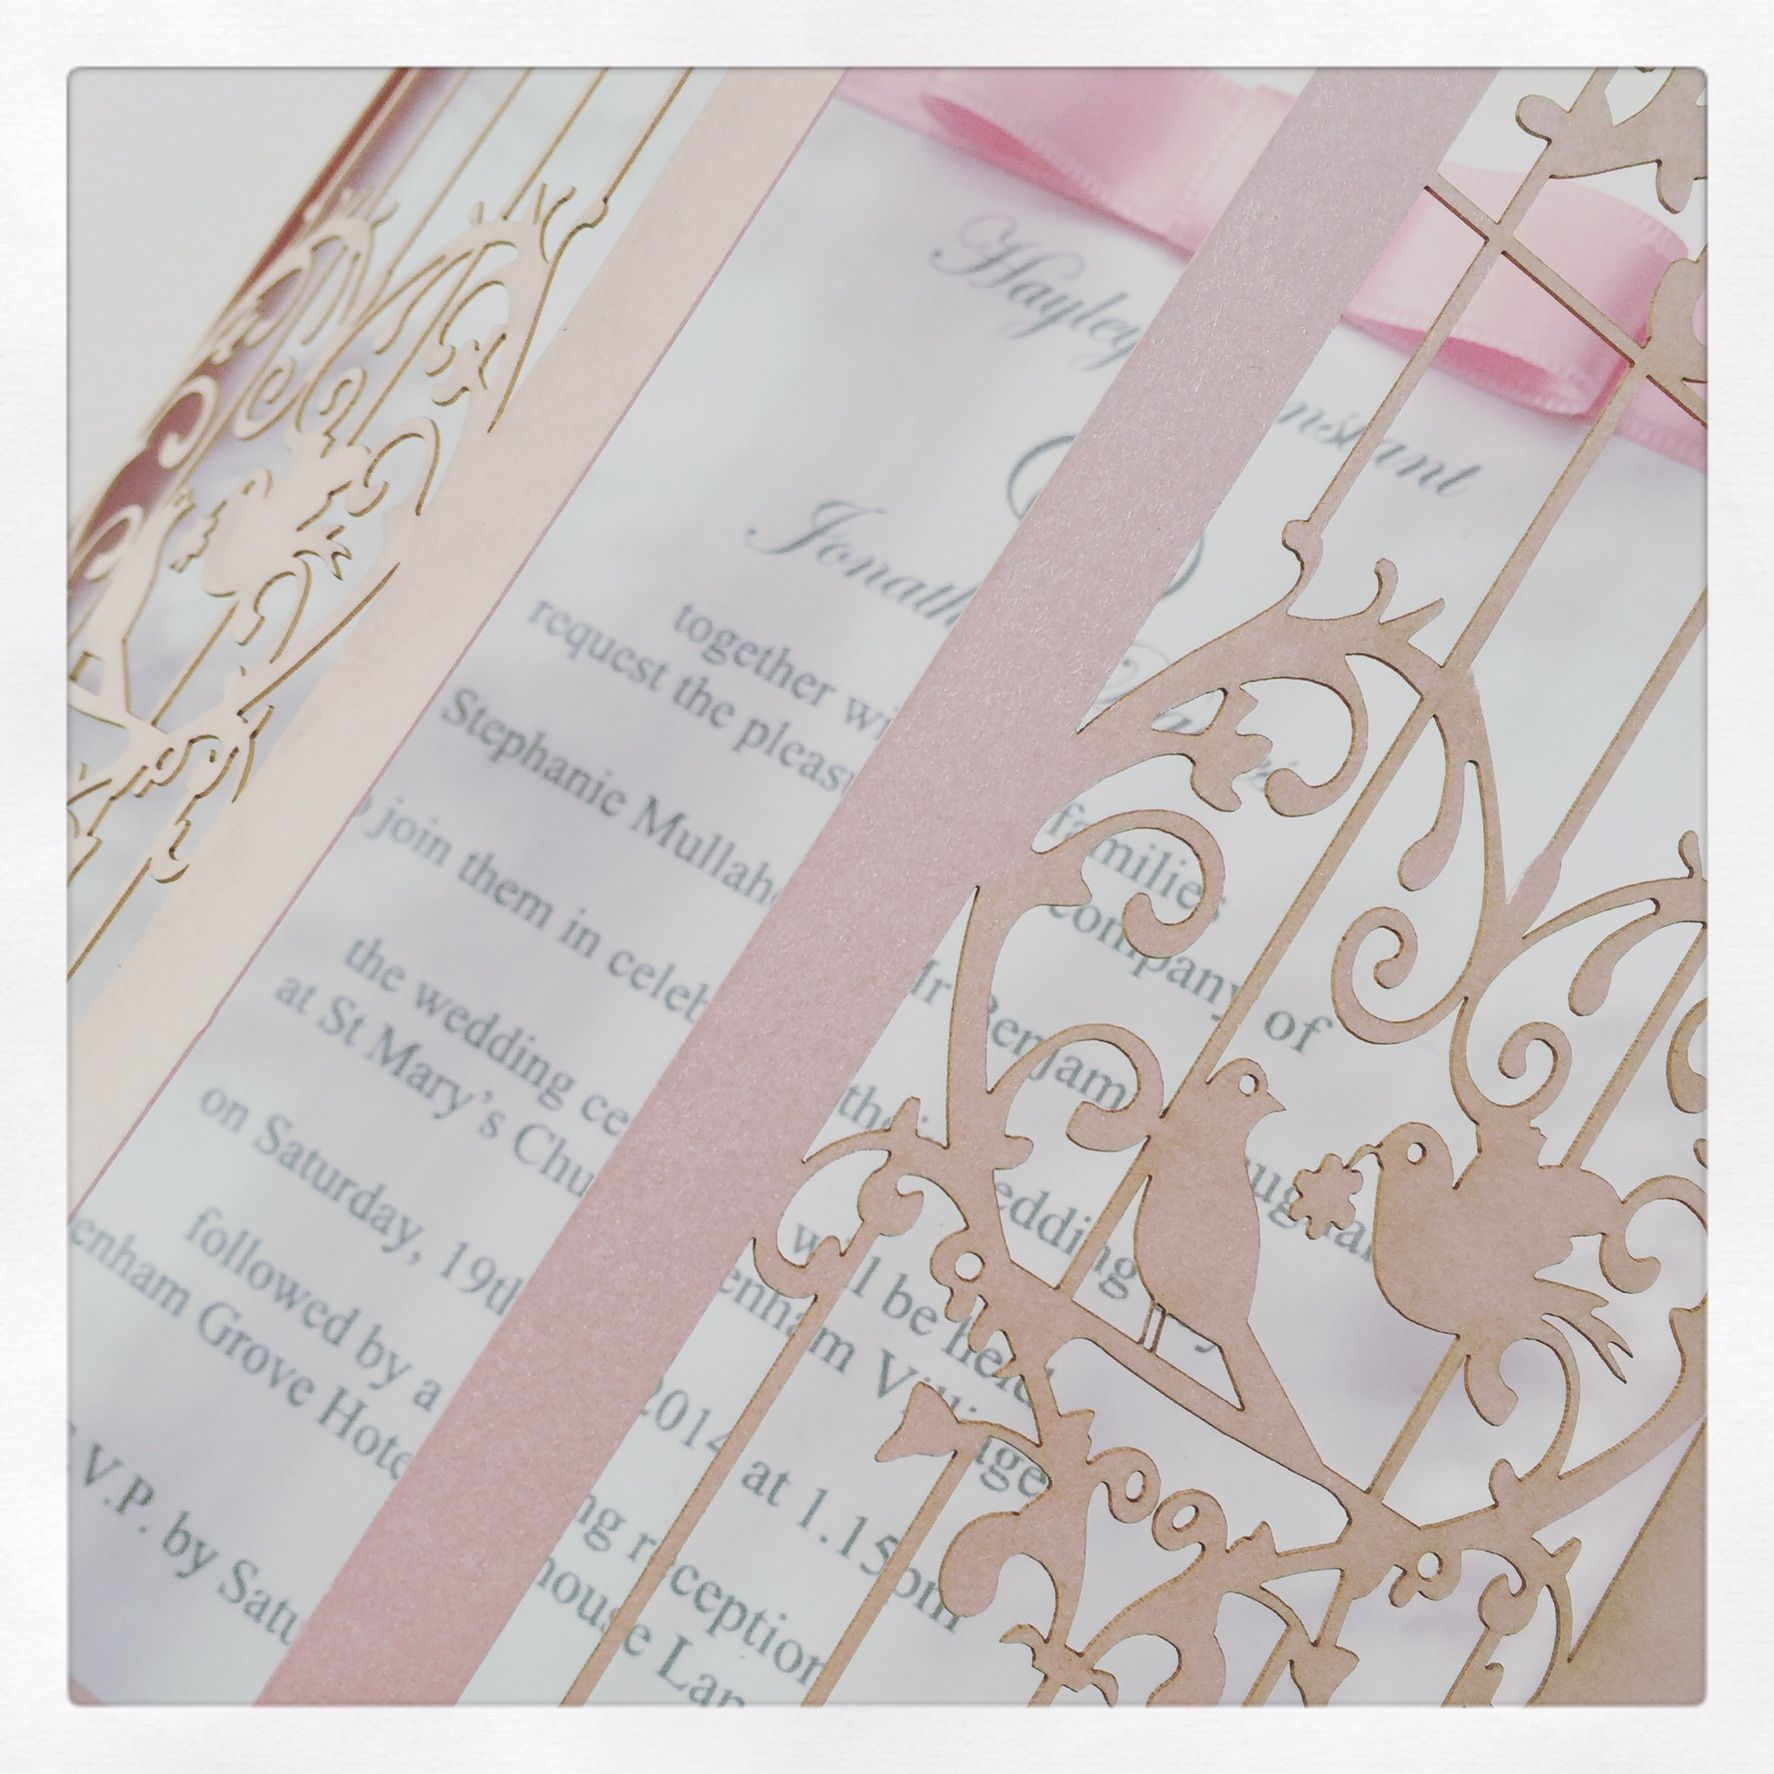 Birdcage laser cut wedding invitation in pale pink by Sew Unique